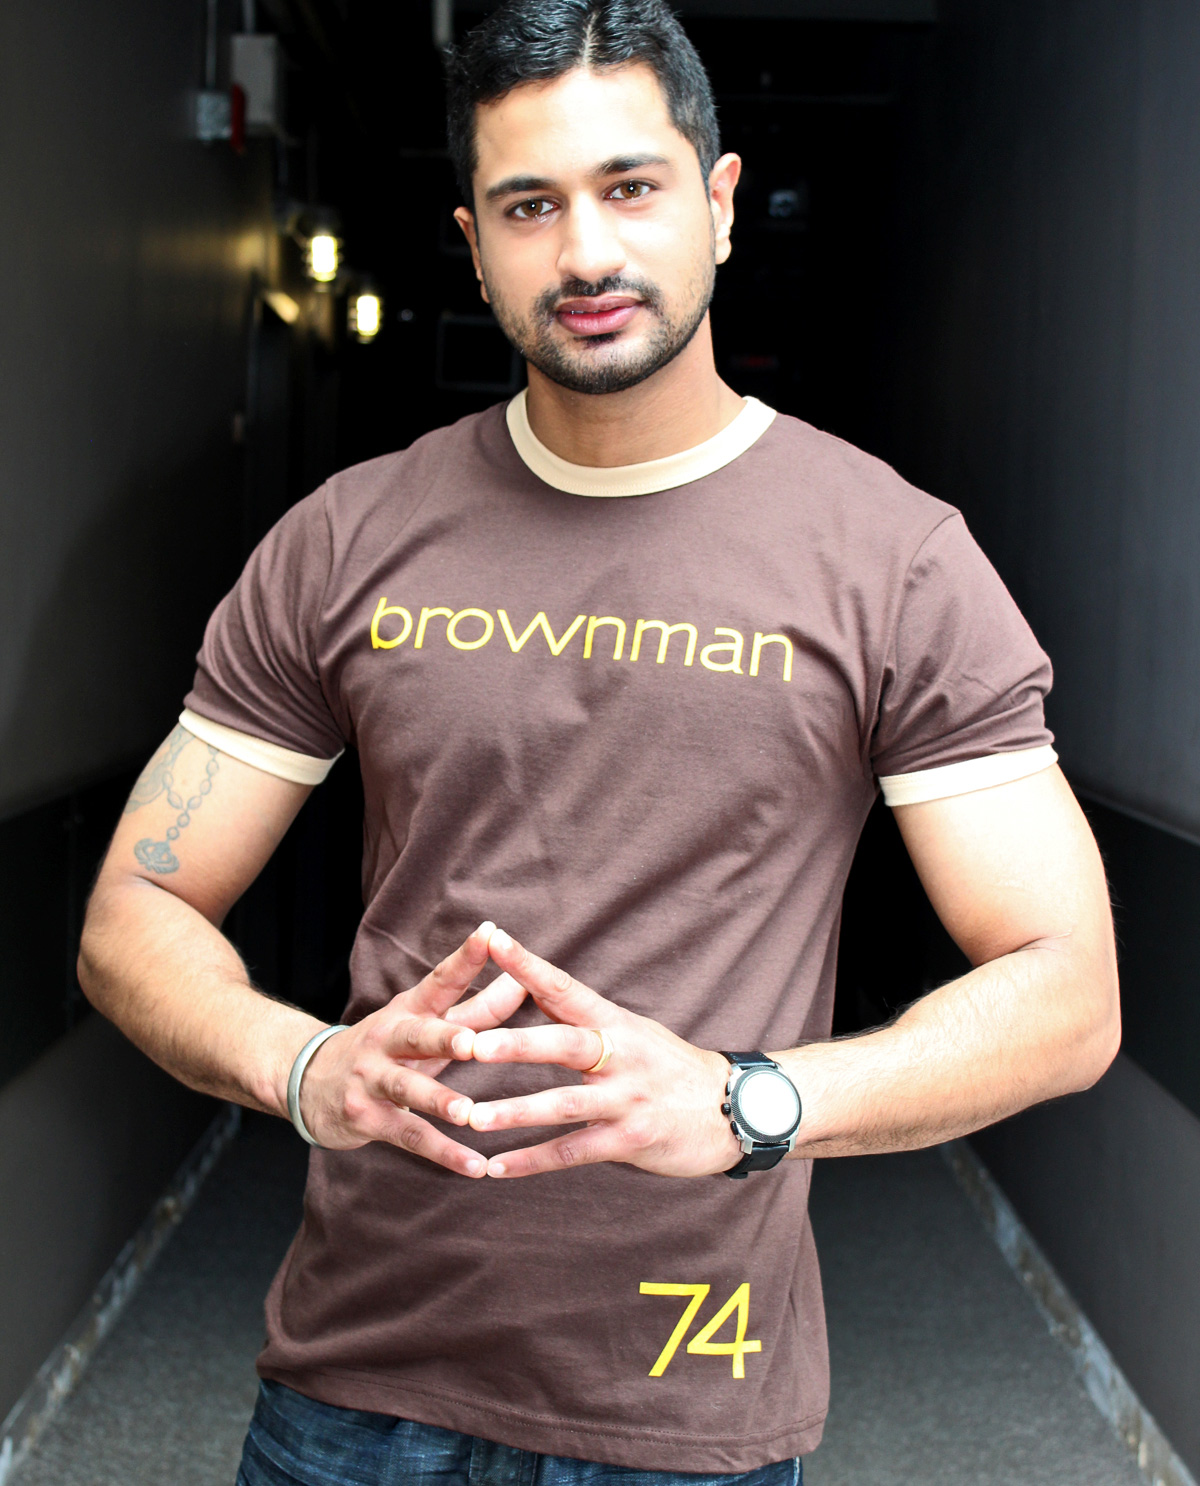 South Asian Male Model wearing American Apparel Brown Ringer T Shirt Graphic Design T.shirt with brownman74 graphic design on front.